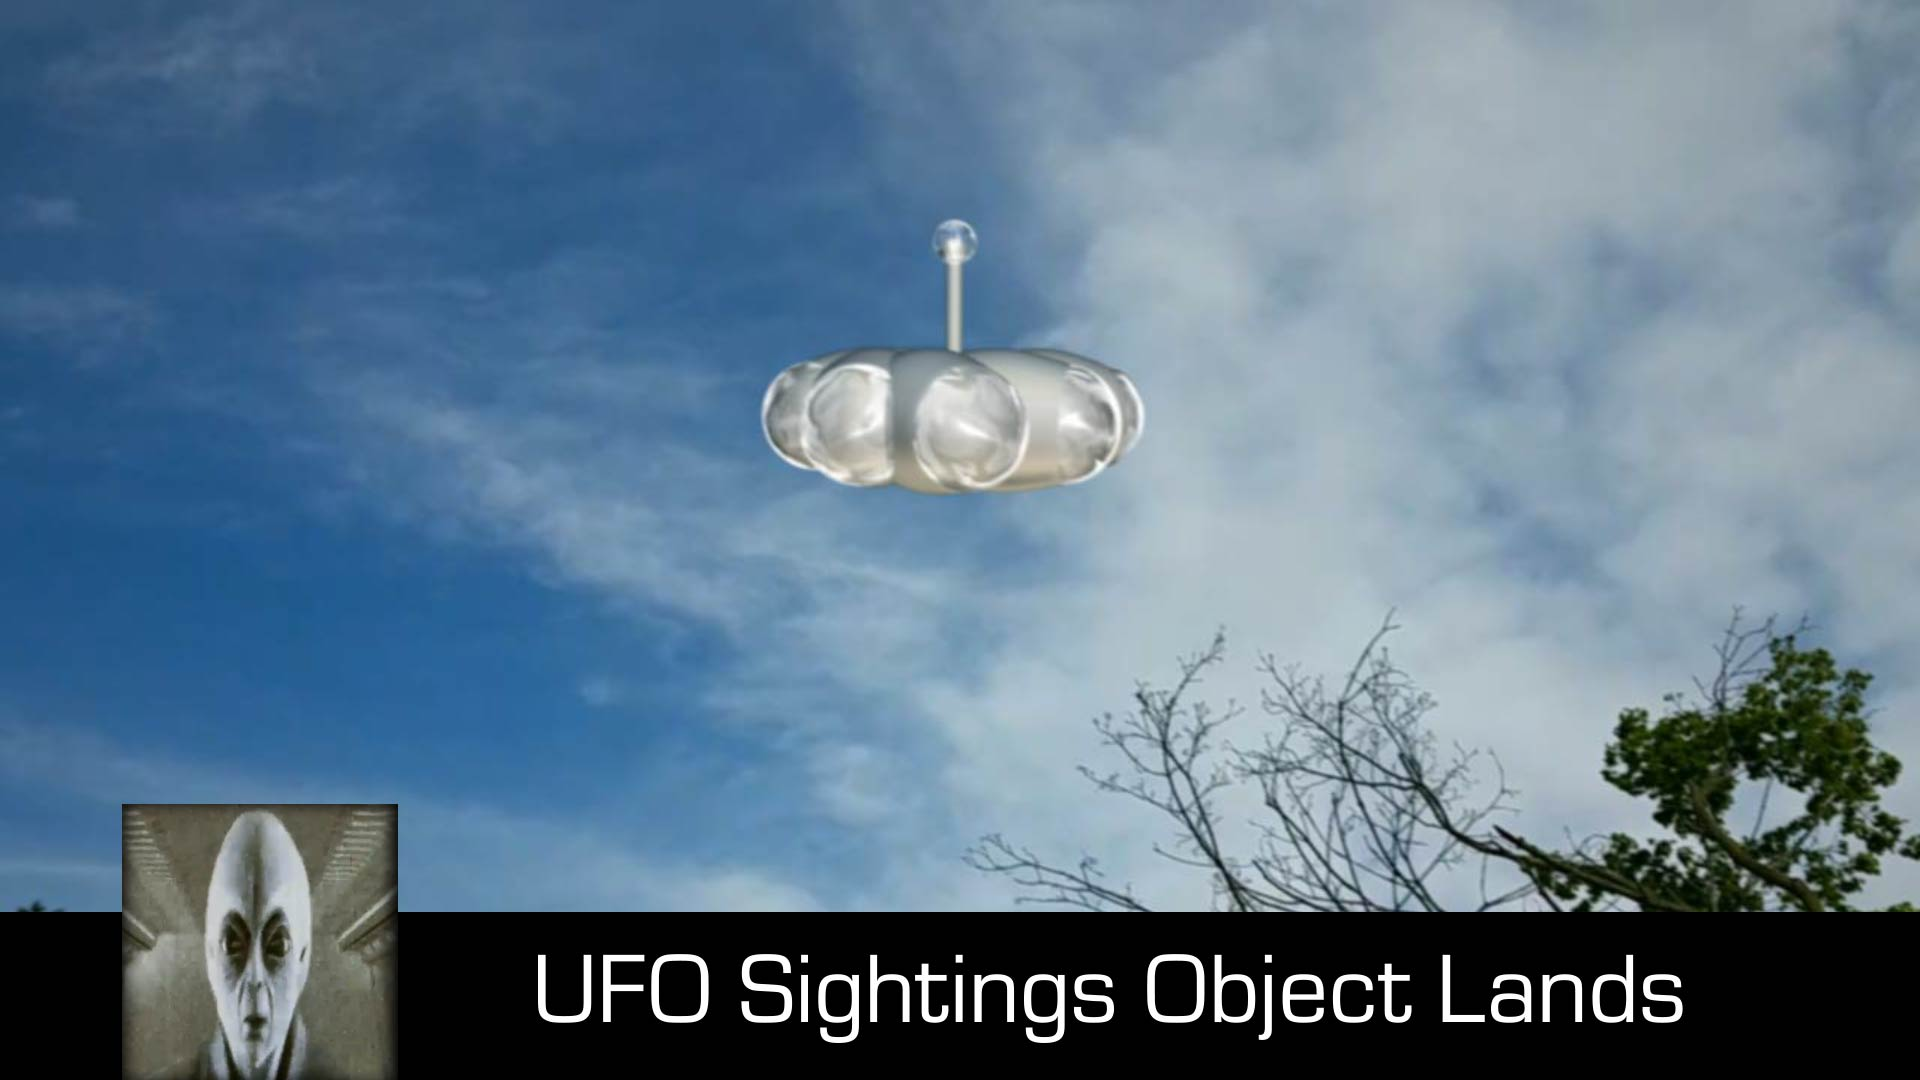 UFO Sightings Unknown Object Lands November 27th 2017